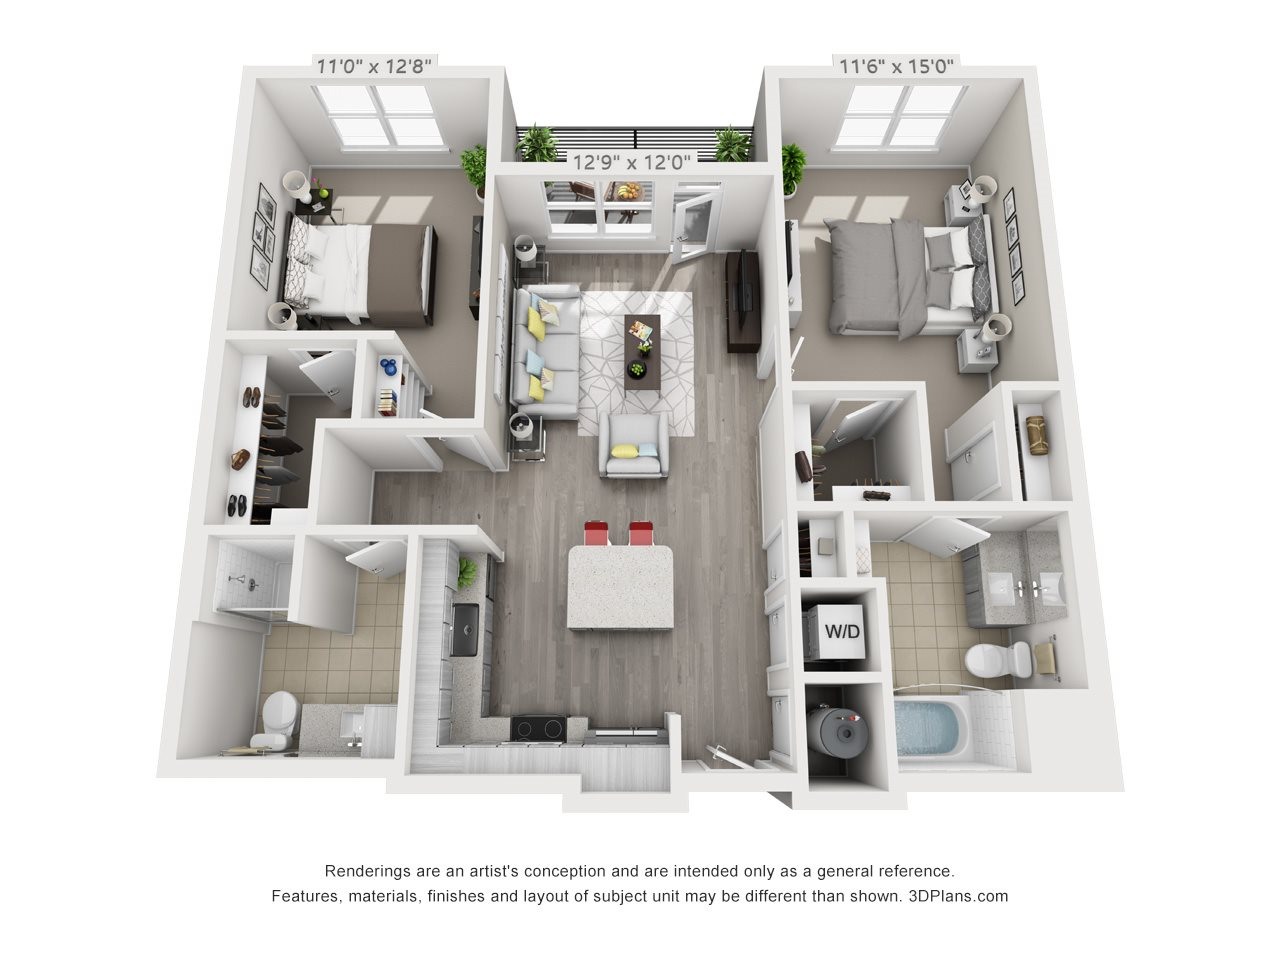 B1C 2 BEDROOM/2 BATH/ CLOSET Floor Plan 14